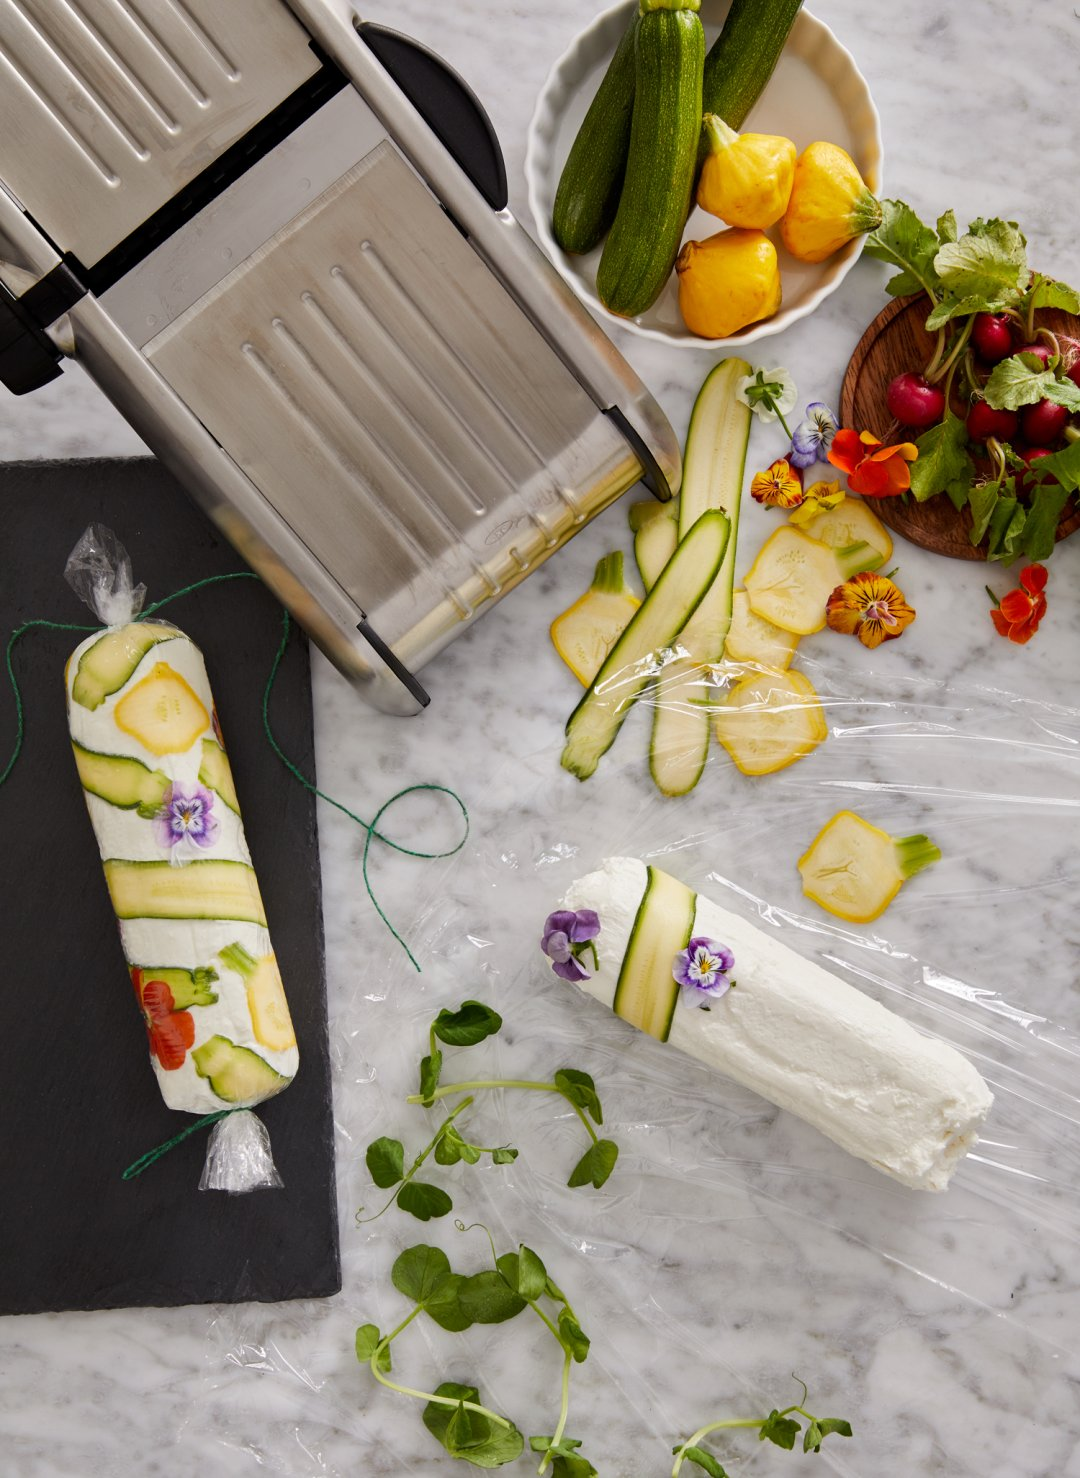 Slicing vegetables on a mandoline to make a goat cheese log